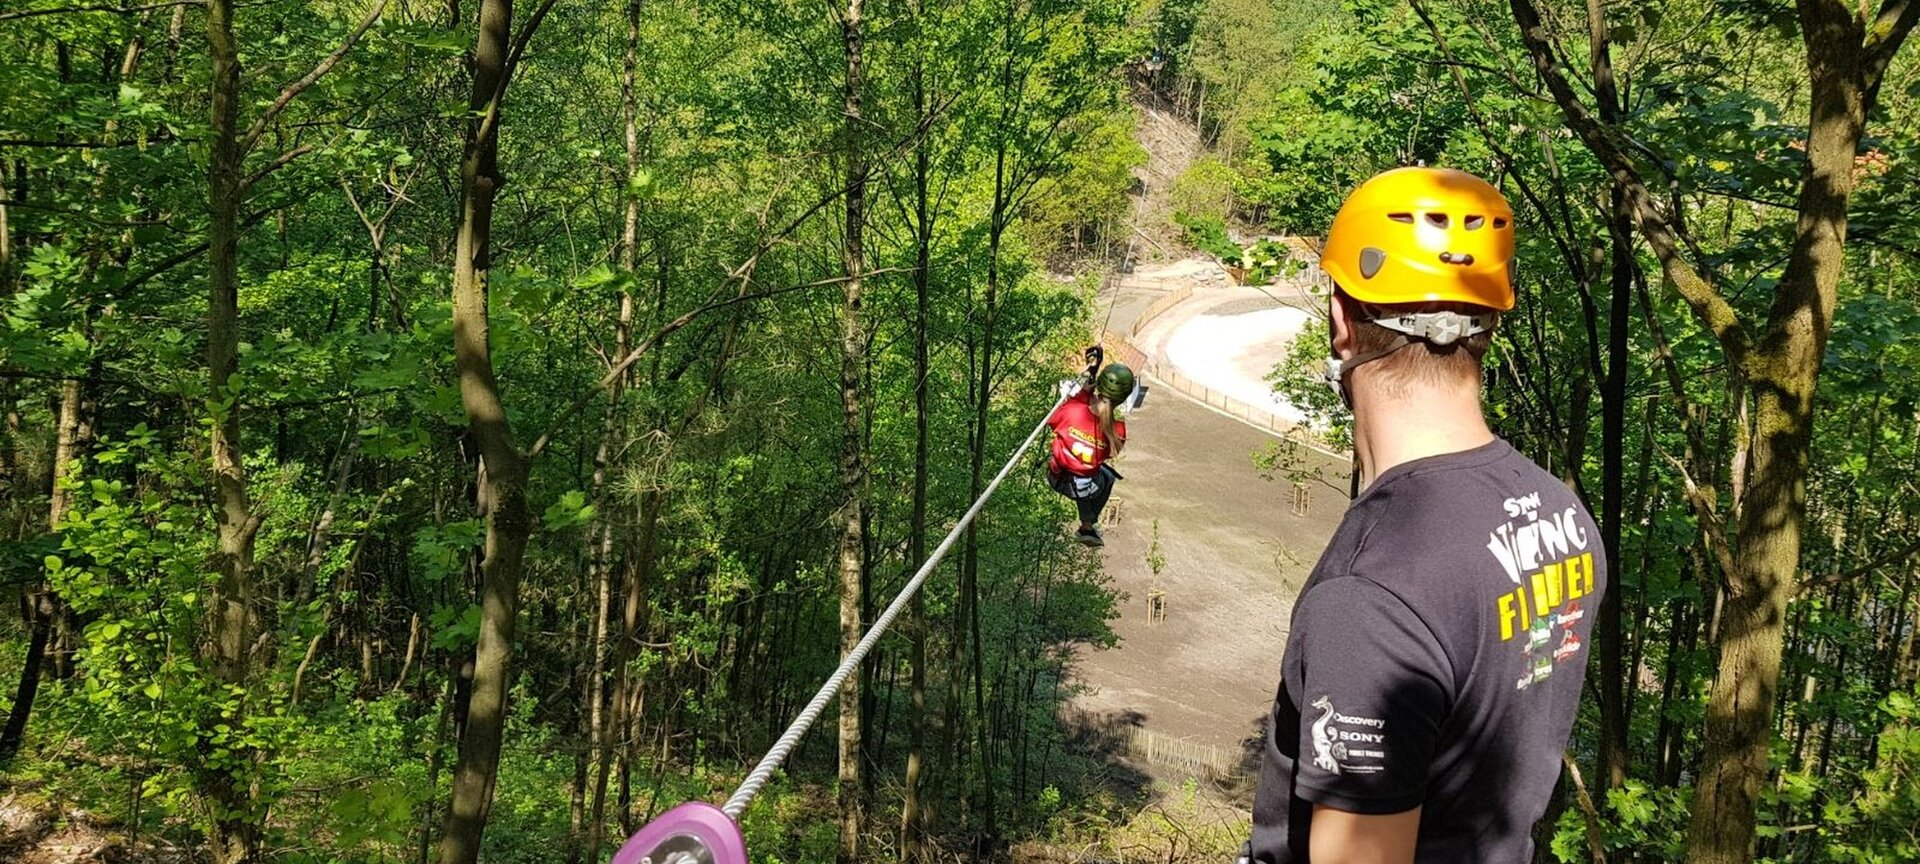 Adventure Park Het Warredal - Zipline